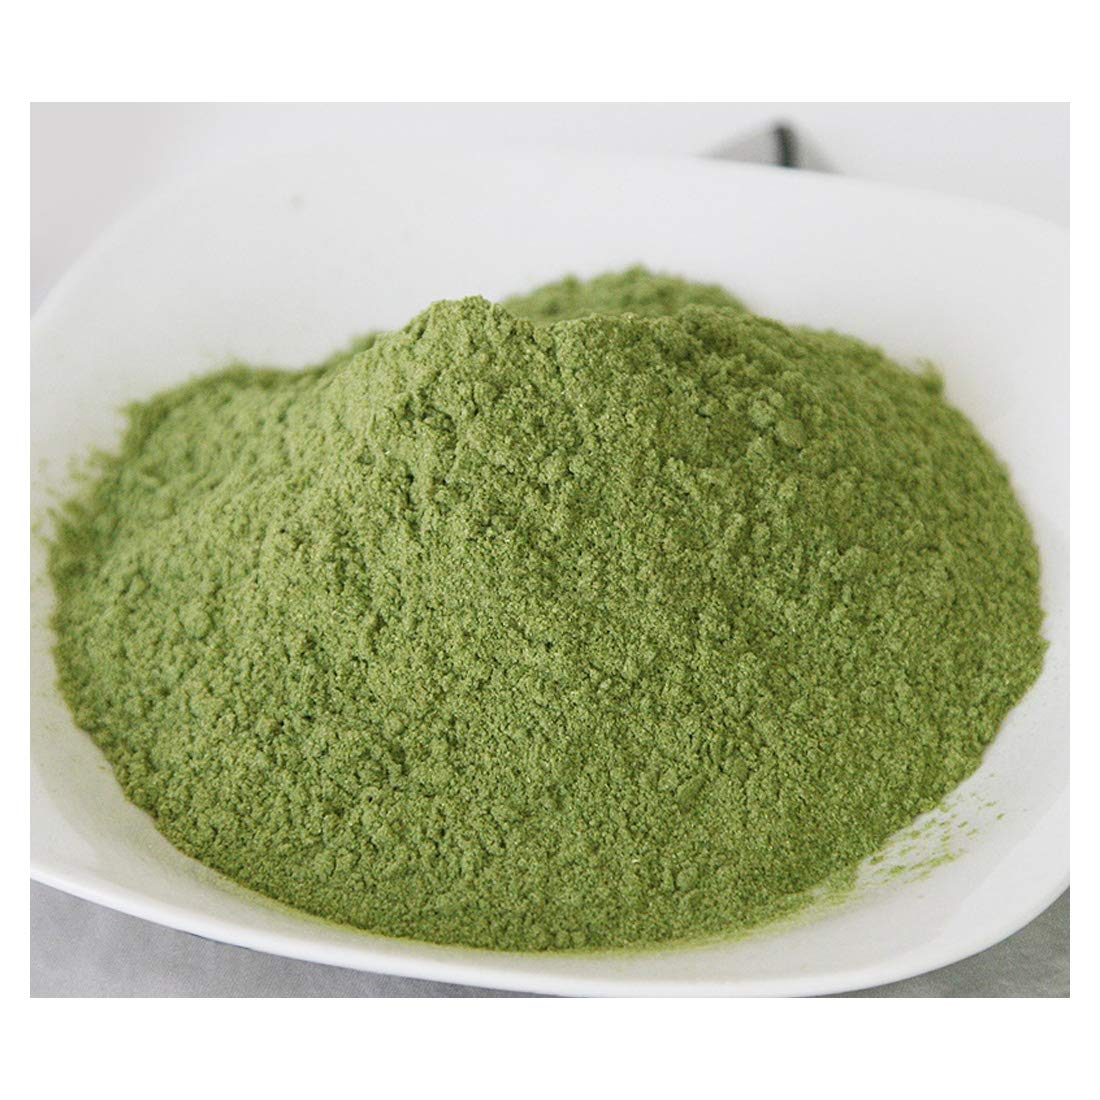 Barley Grass Powder Antioxidants, Protein, Minerals, Rich Fiber, Chlorophyll and Best Superfoods for Beverage and Smoothie, South Korea's Pristine Area Grown, and Vegan Friendly 보리새싹 새싹보리(600g)